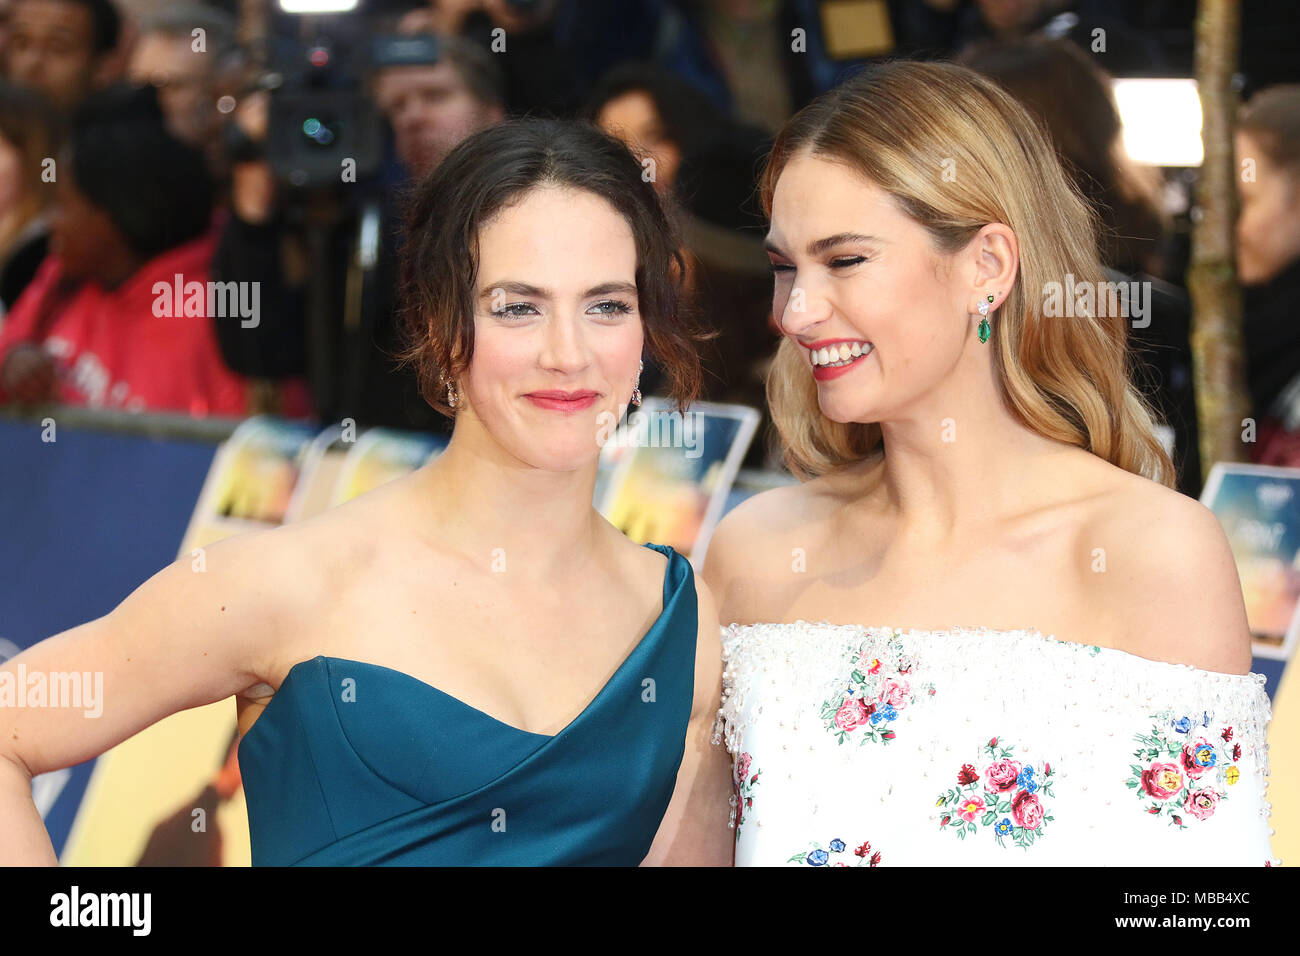 London, UK. 9th Apr, 2018. Jessica Brown Findlay, Lily James, The Guernsey Literary and Potato Peel Pie Society - World Premiere, Curzon Mayfair, London UK, 09 April 2018, Photo by Richard Goldschmidt Credit: Rich Gold/Alamy Live News - Stock Image